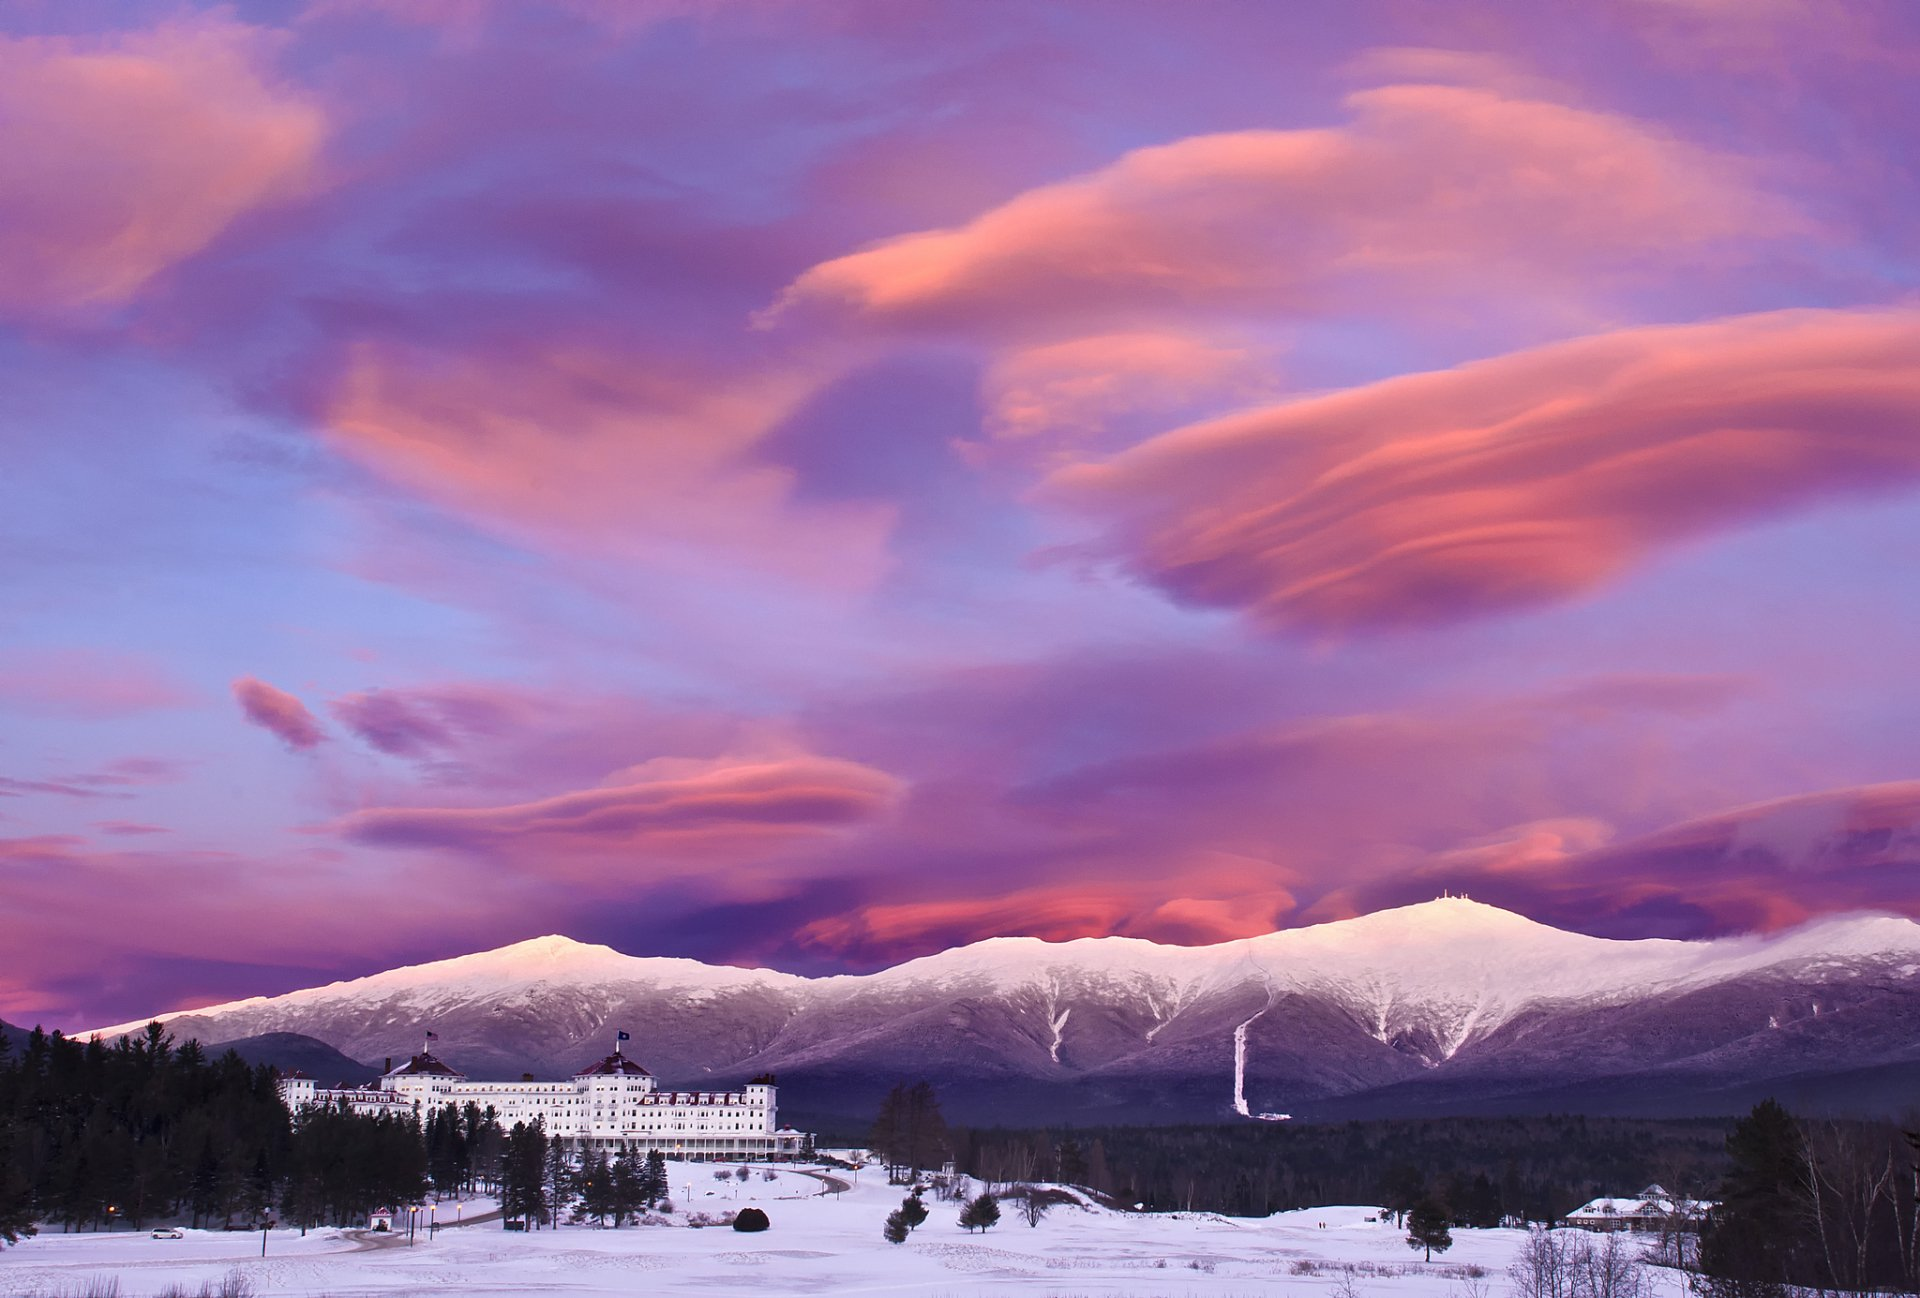 Man Made - Mount Washington Hotel  Resort Mountain Sky Cloud Sunset Snow Winter Wallpaper